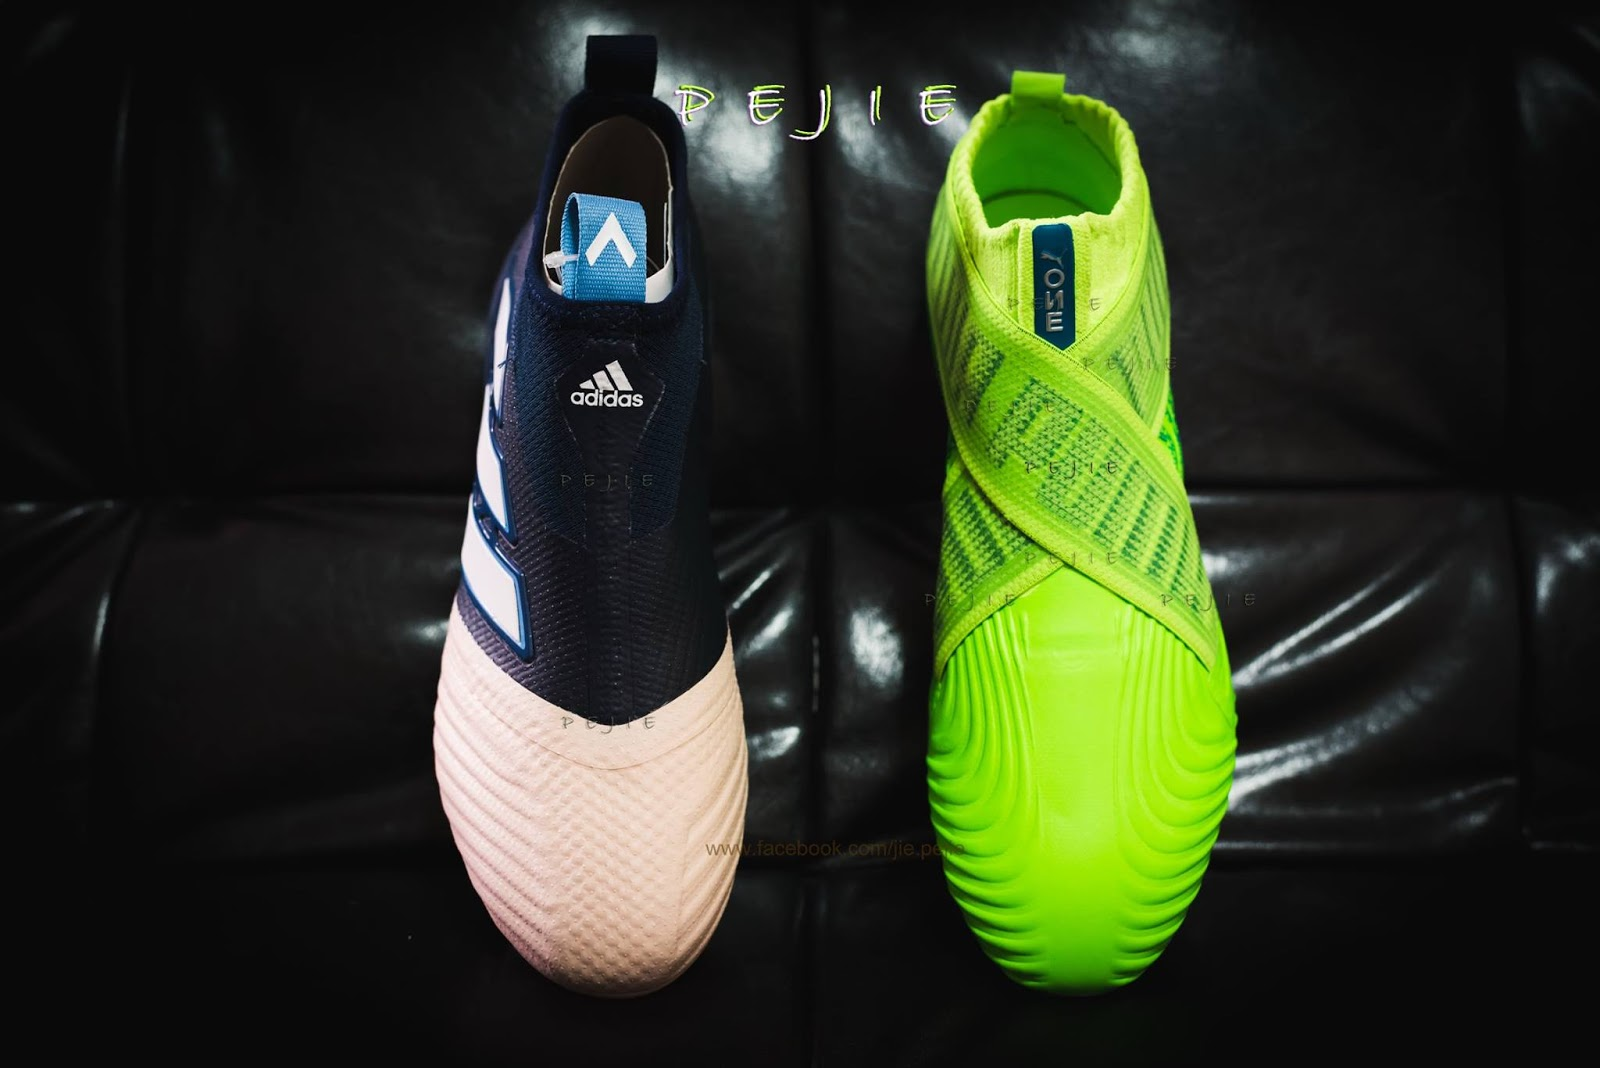 07e2edffff0b Would this boot have been a serious competitor for the laceless Adidas  Predator  Would you have liked Puma to release the laceless Puma One soccer  cleat